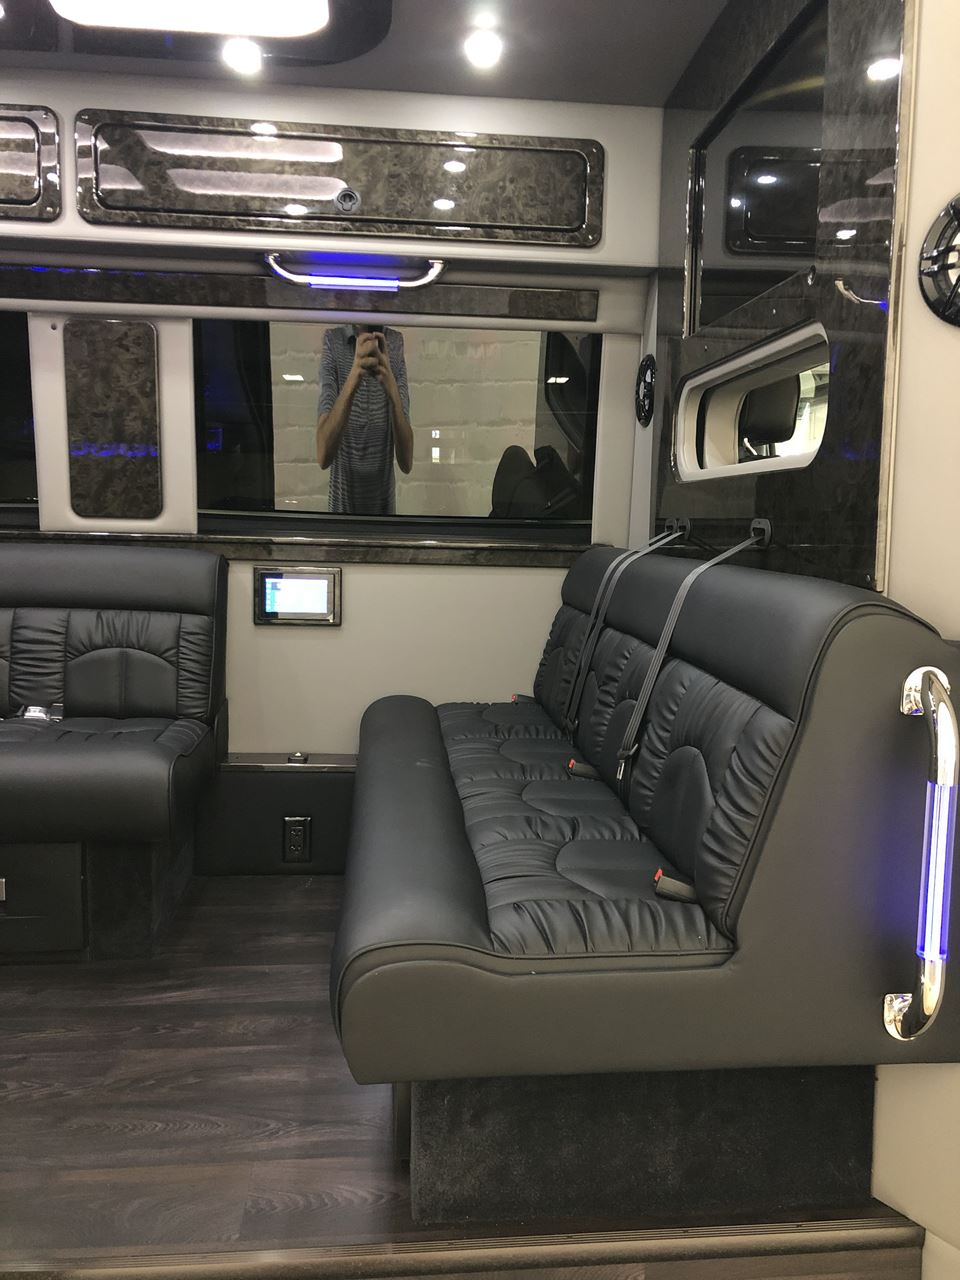 2019 Mercedes Benz Midwest Automotive Sprinter Limousine 21 6